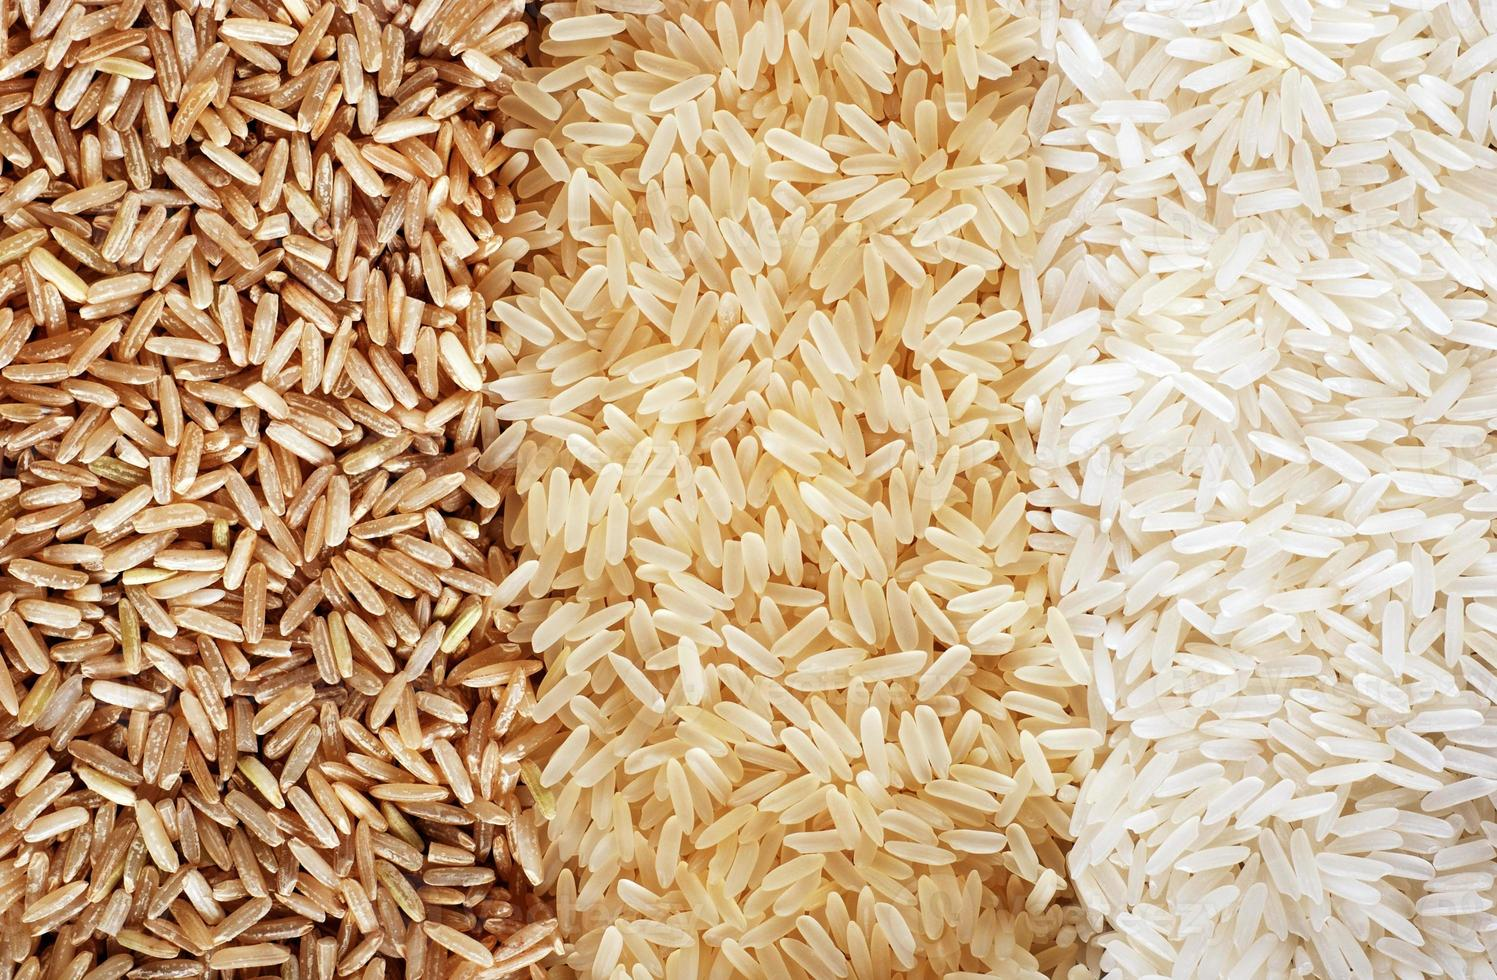 Three rows of rice varieties - brown, wild and white. photo